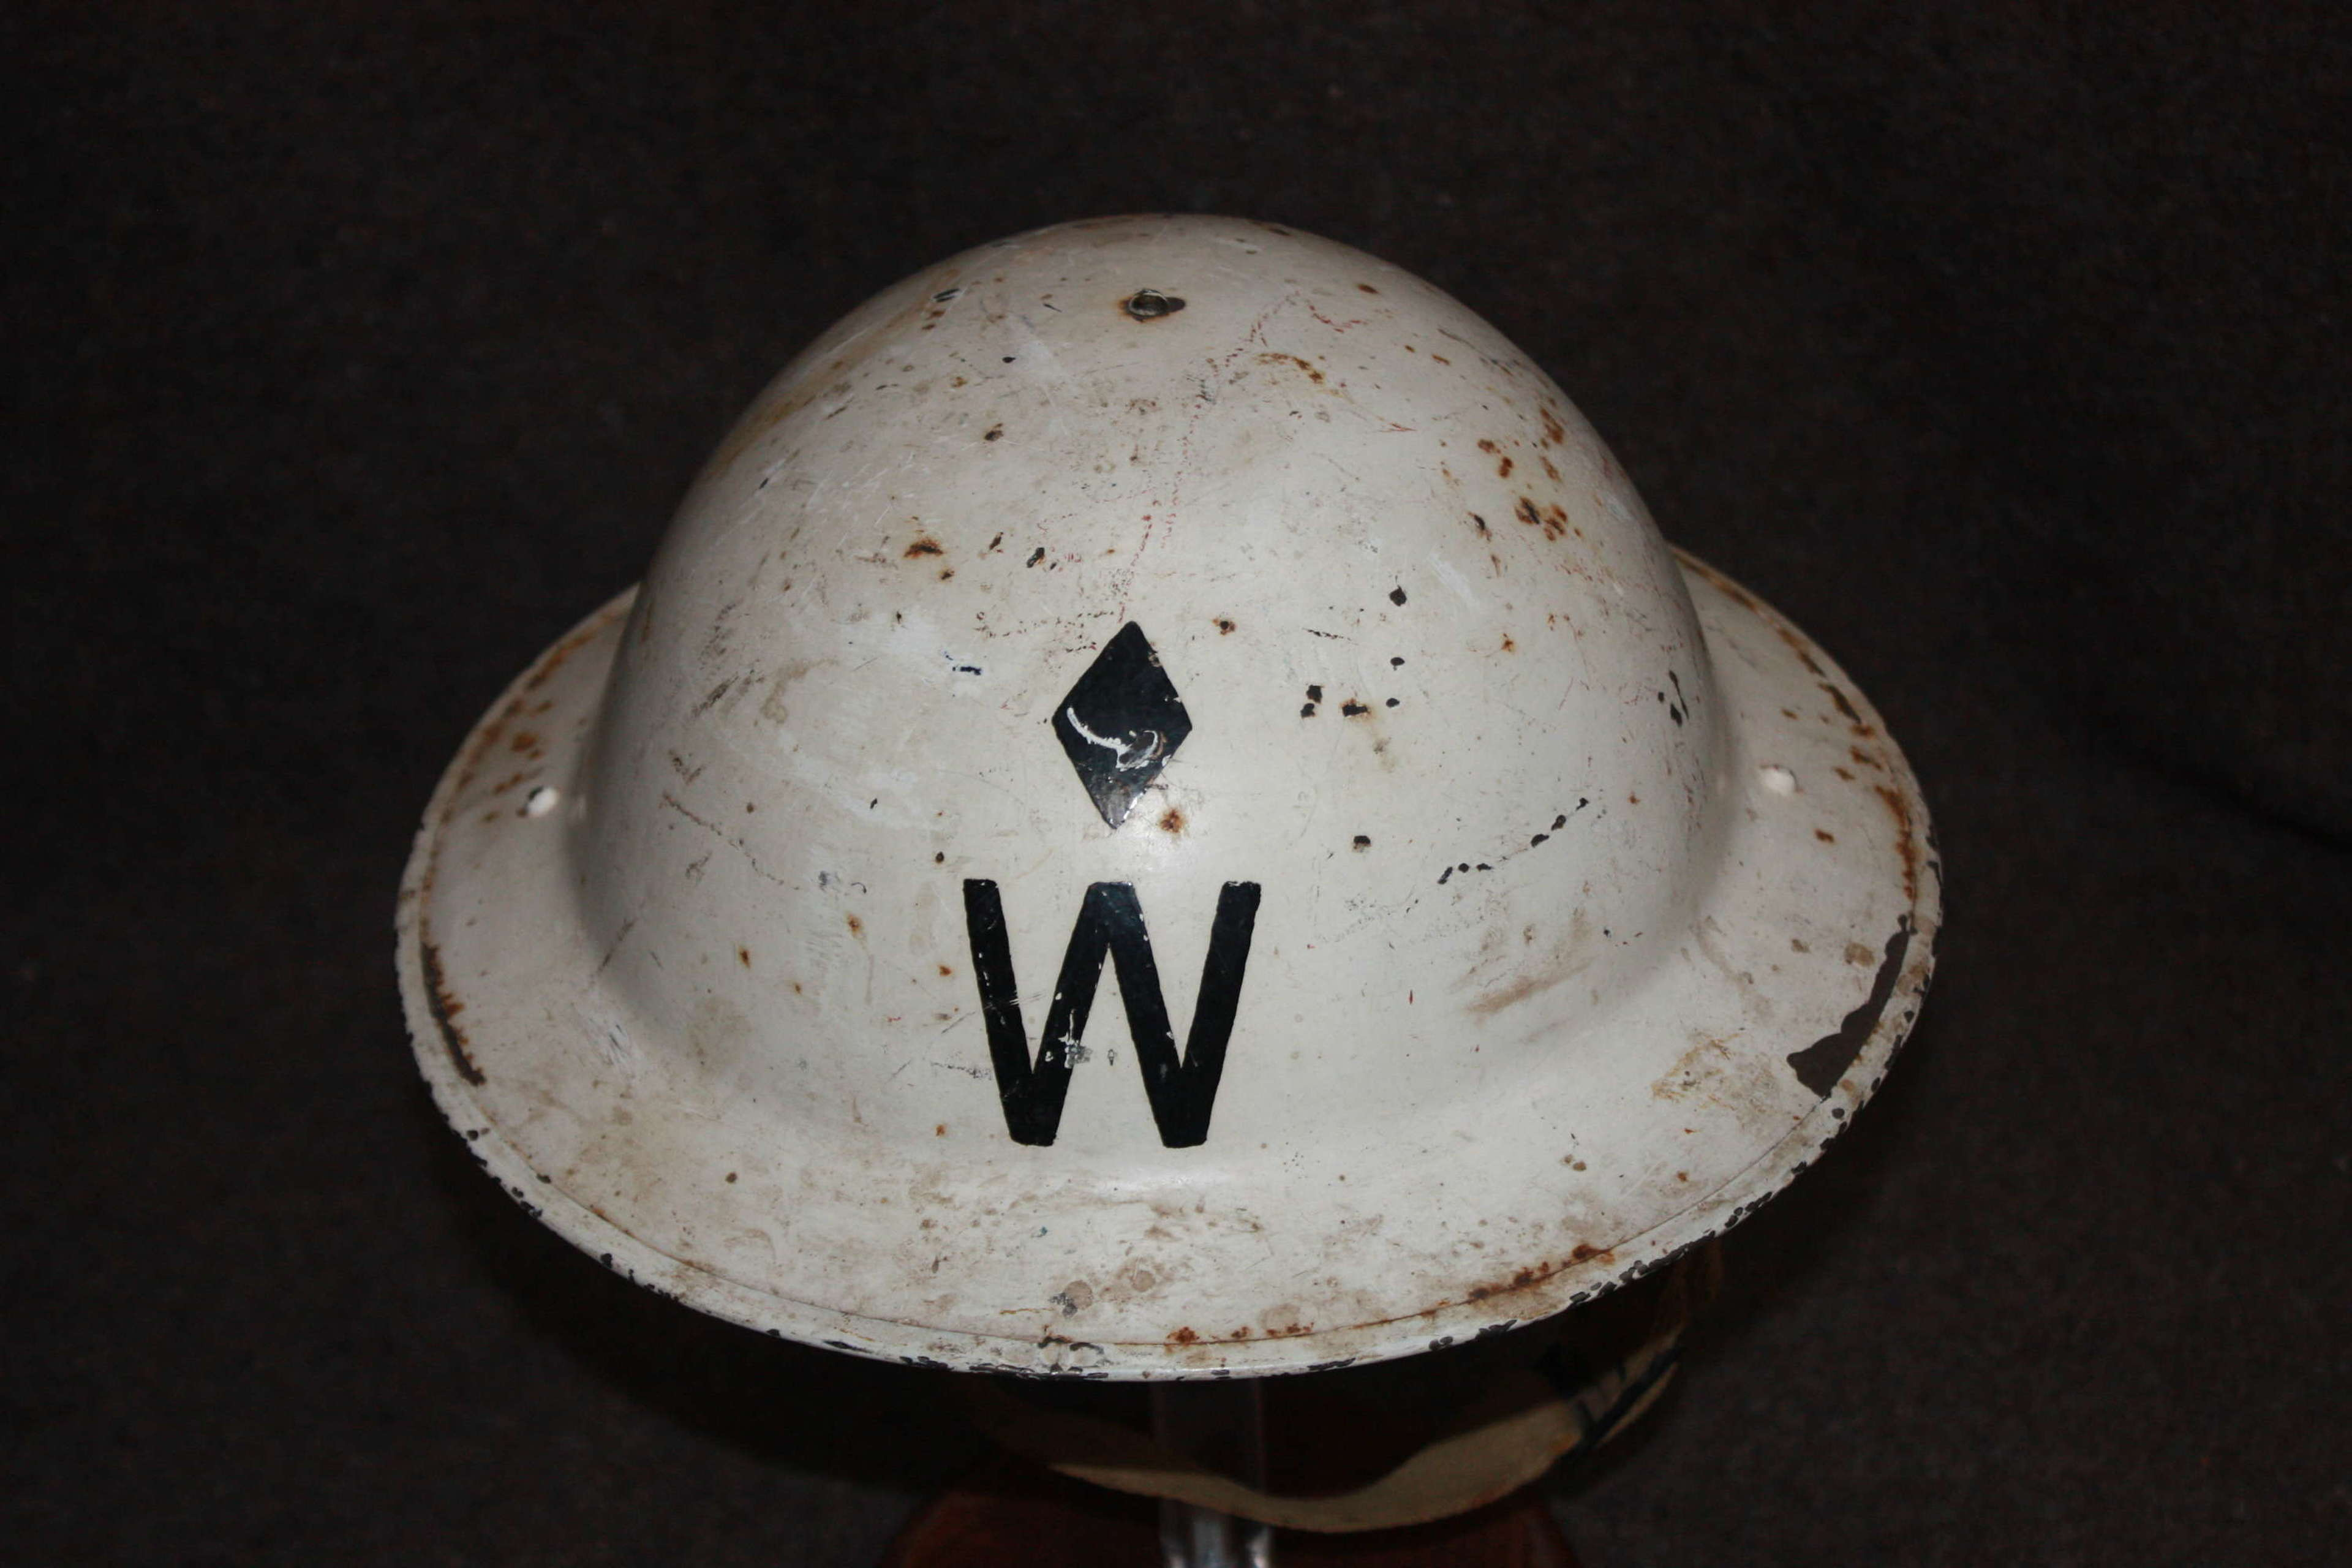 A GOOD WWII SENIOR WARDENS HELMET WITH A DIAMOND ABOVE THE W